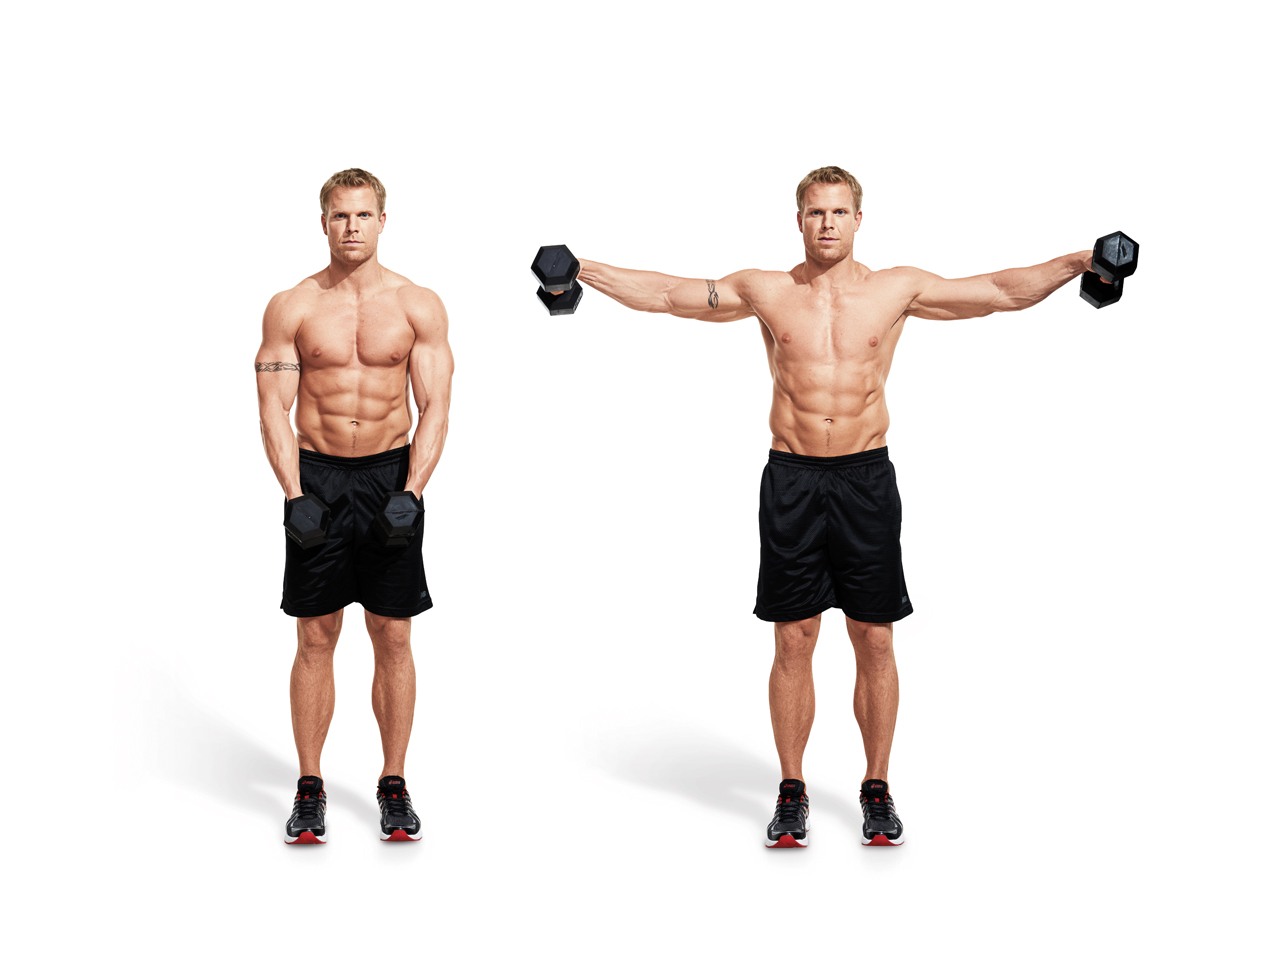 Dumbbell Lateral Raise Video - Watch Proper Form, Get Tips ...